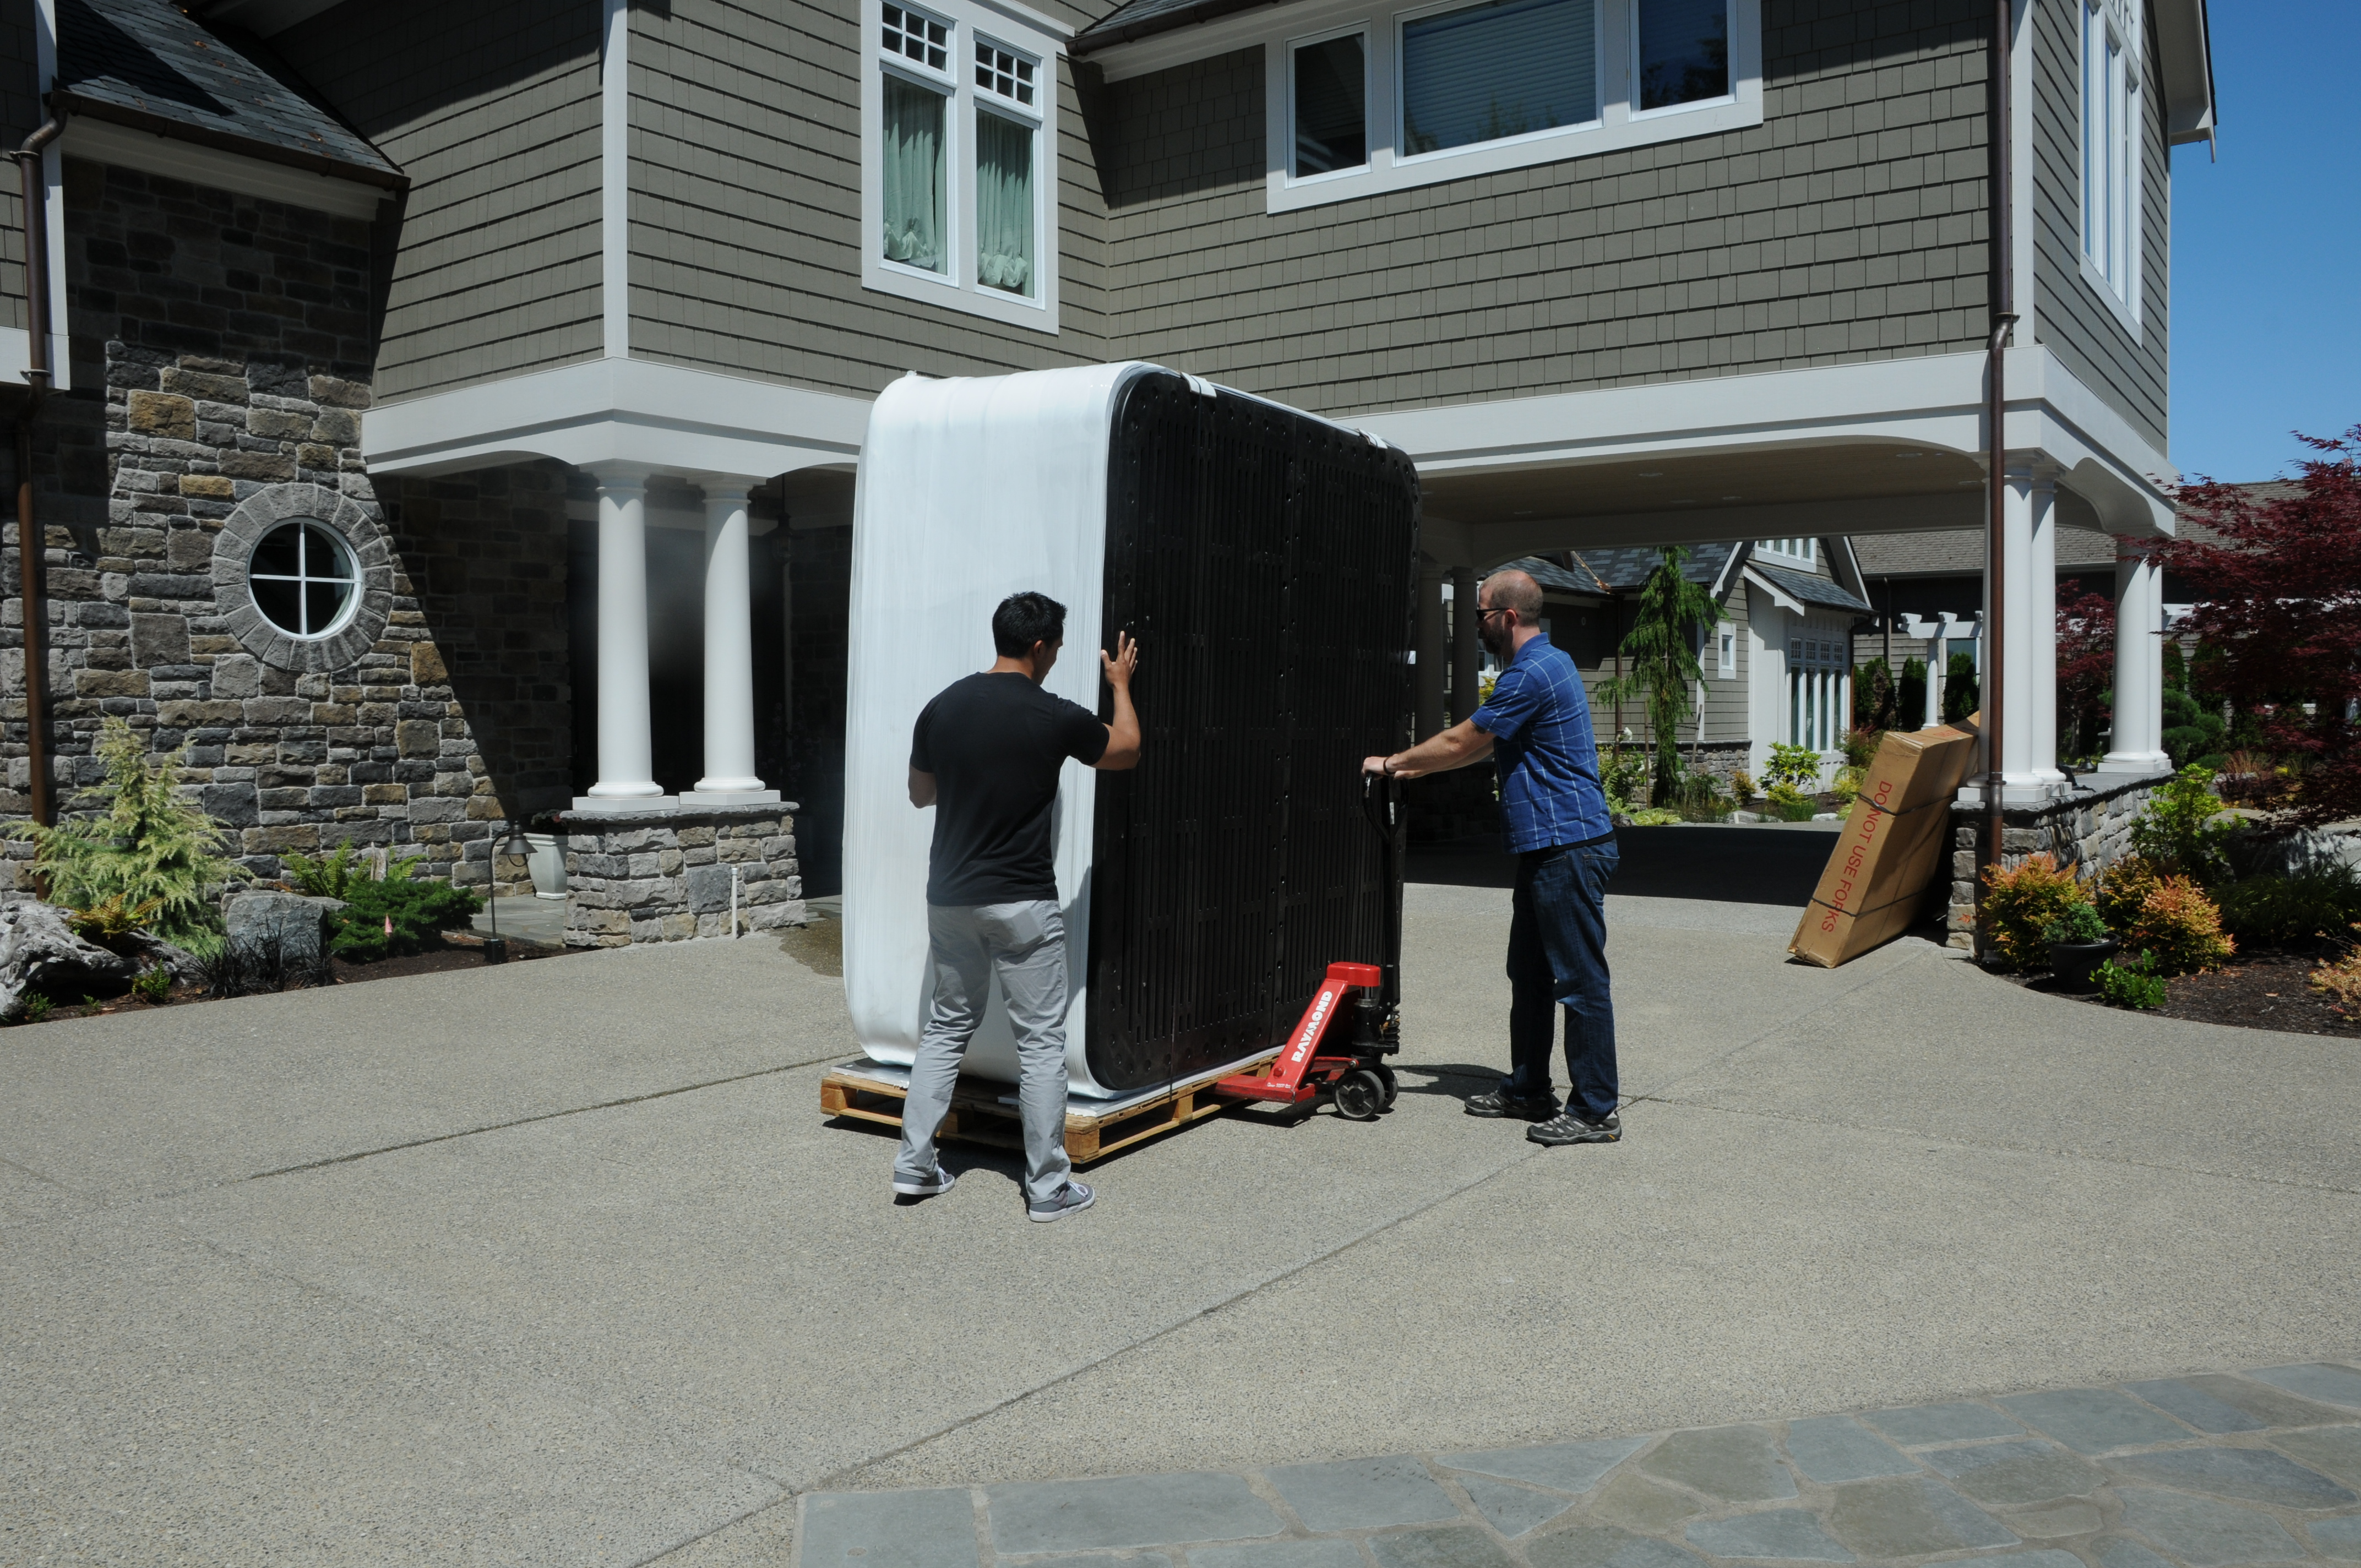 hot tub being moved using a pallet jack